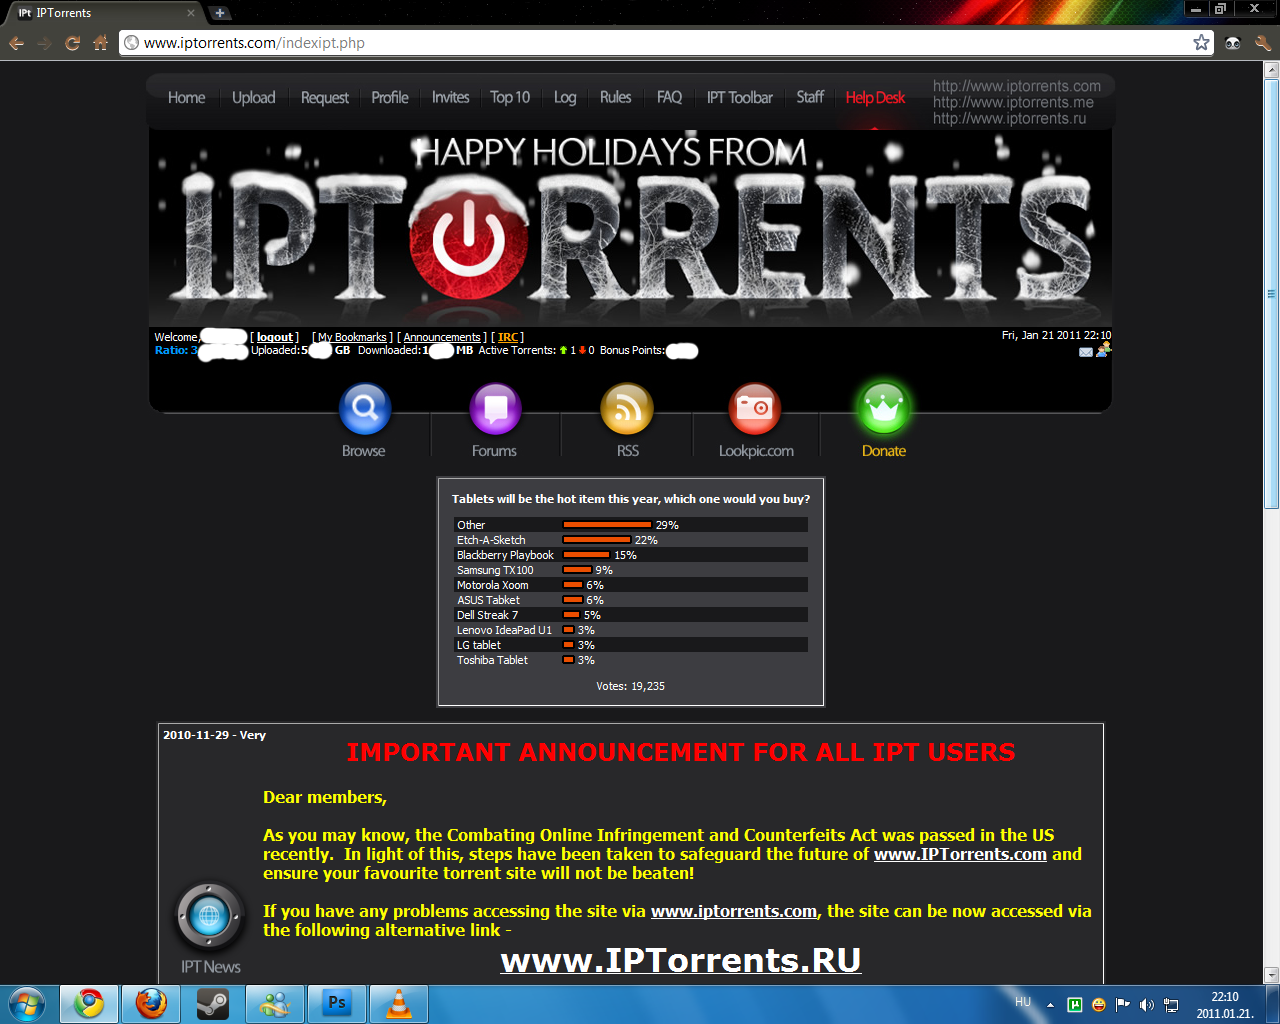 1x nCore, 1x TvStore, 1x majomparade - Torrent Invites - Get your